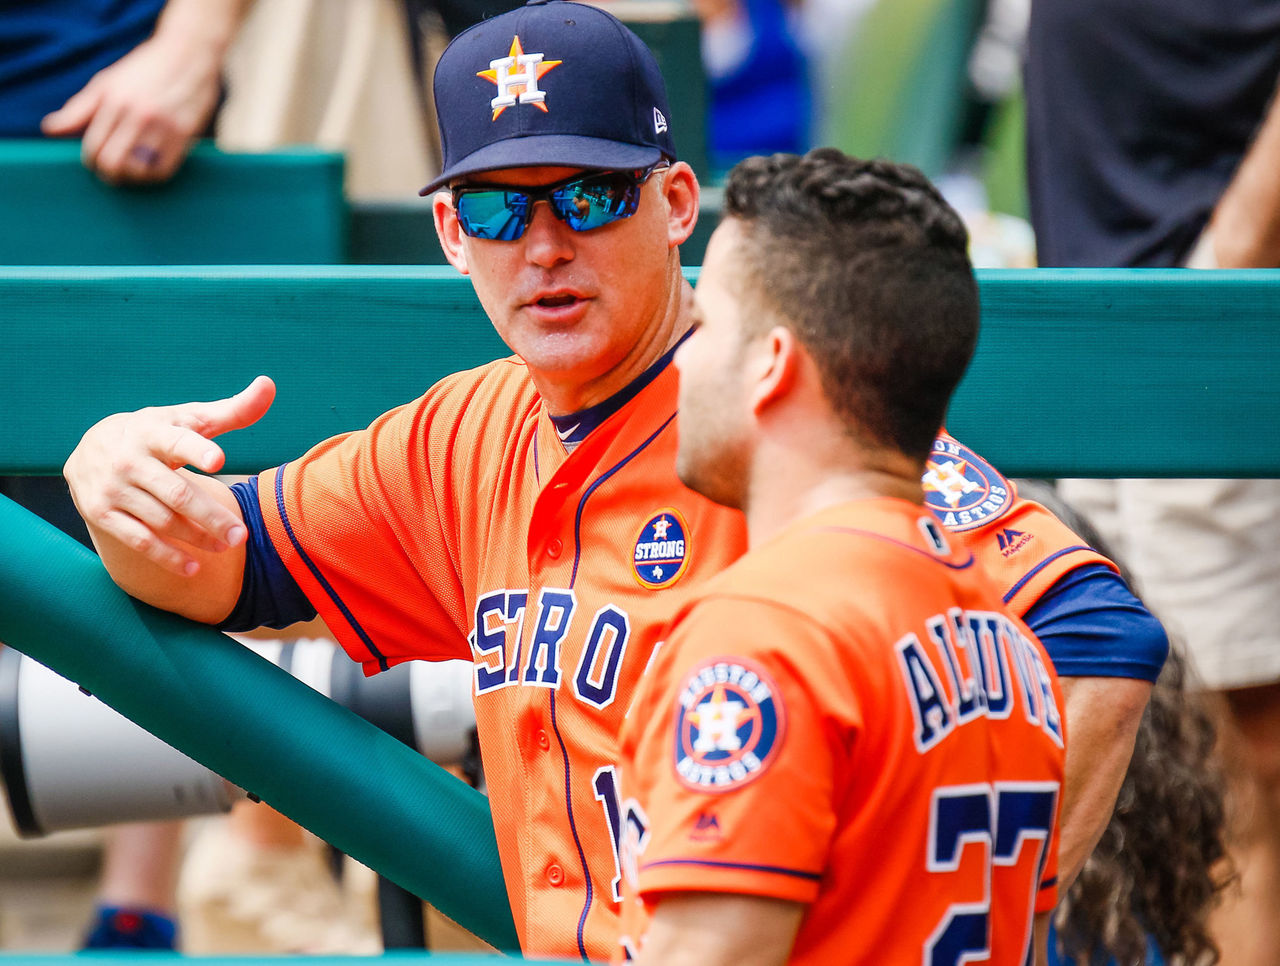 Cropped 2017 09 27t195209z 575934997 nocid rtrmadp 3 mlb houston astros at texas rangers